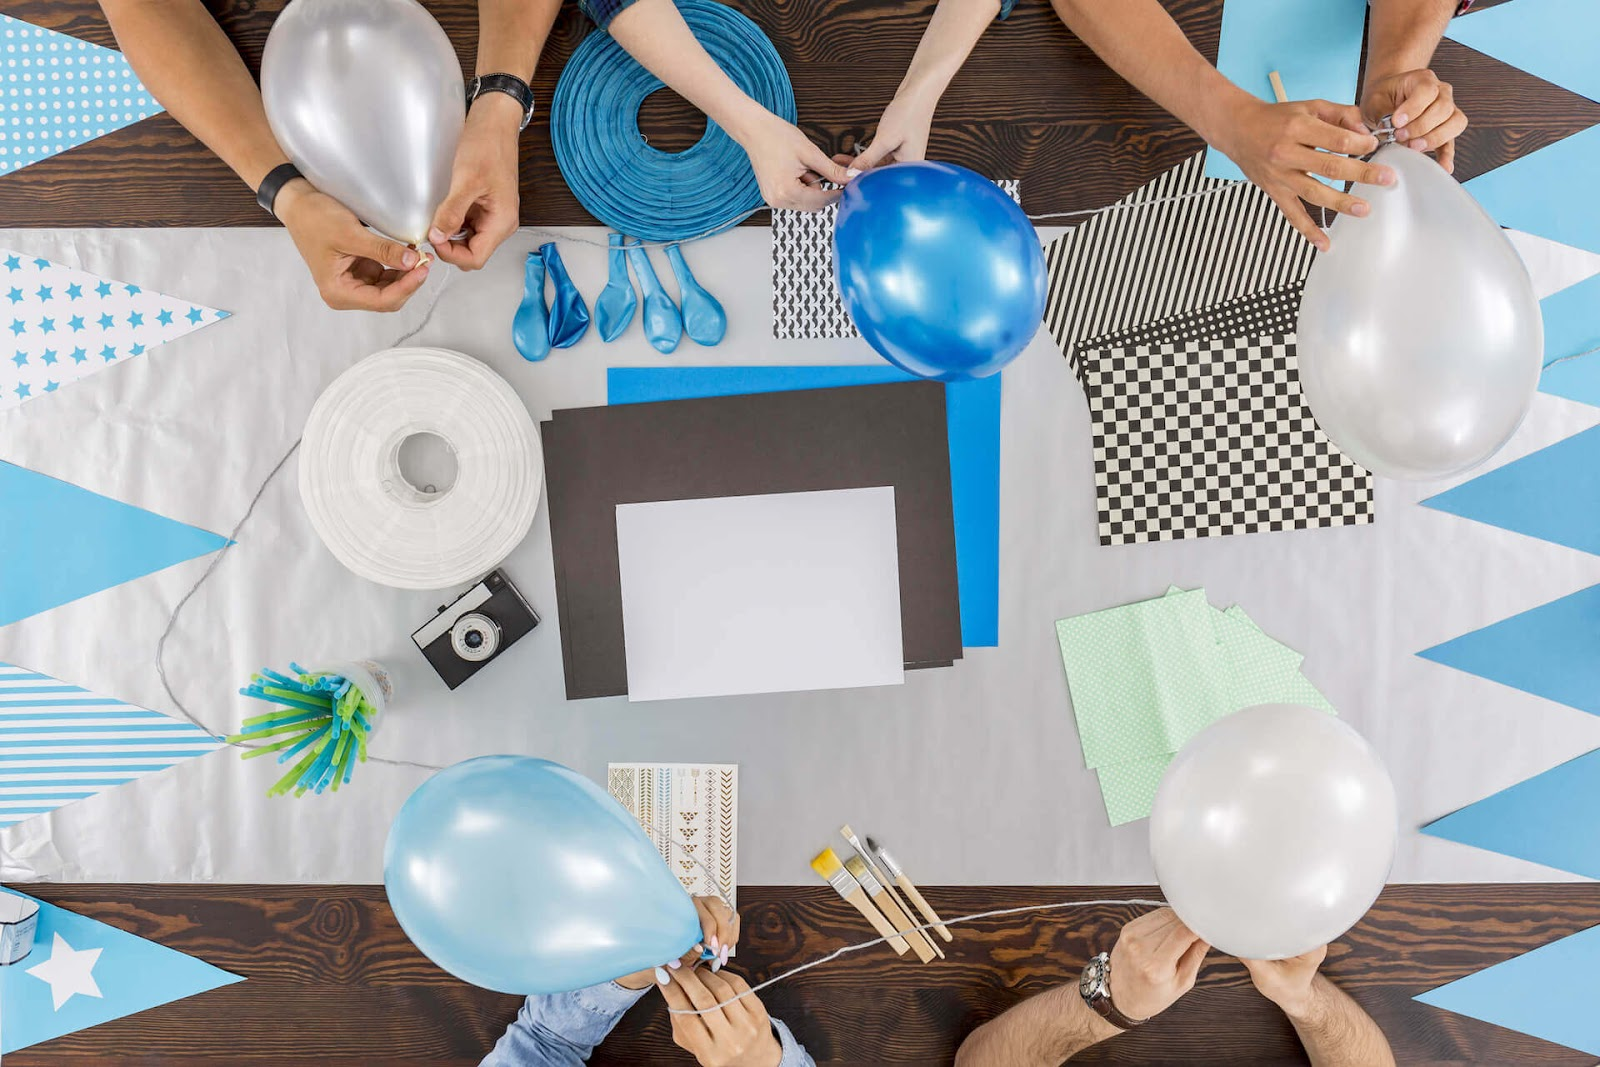 Hands blowing up and tying balloons together